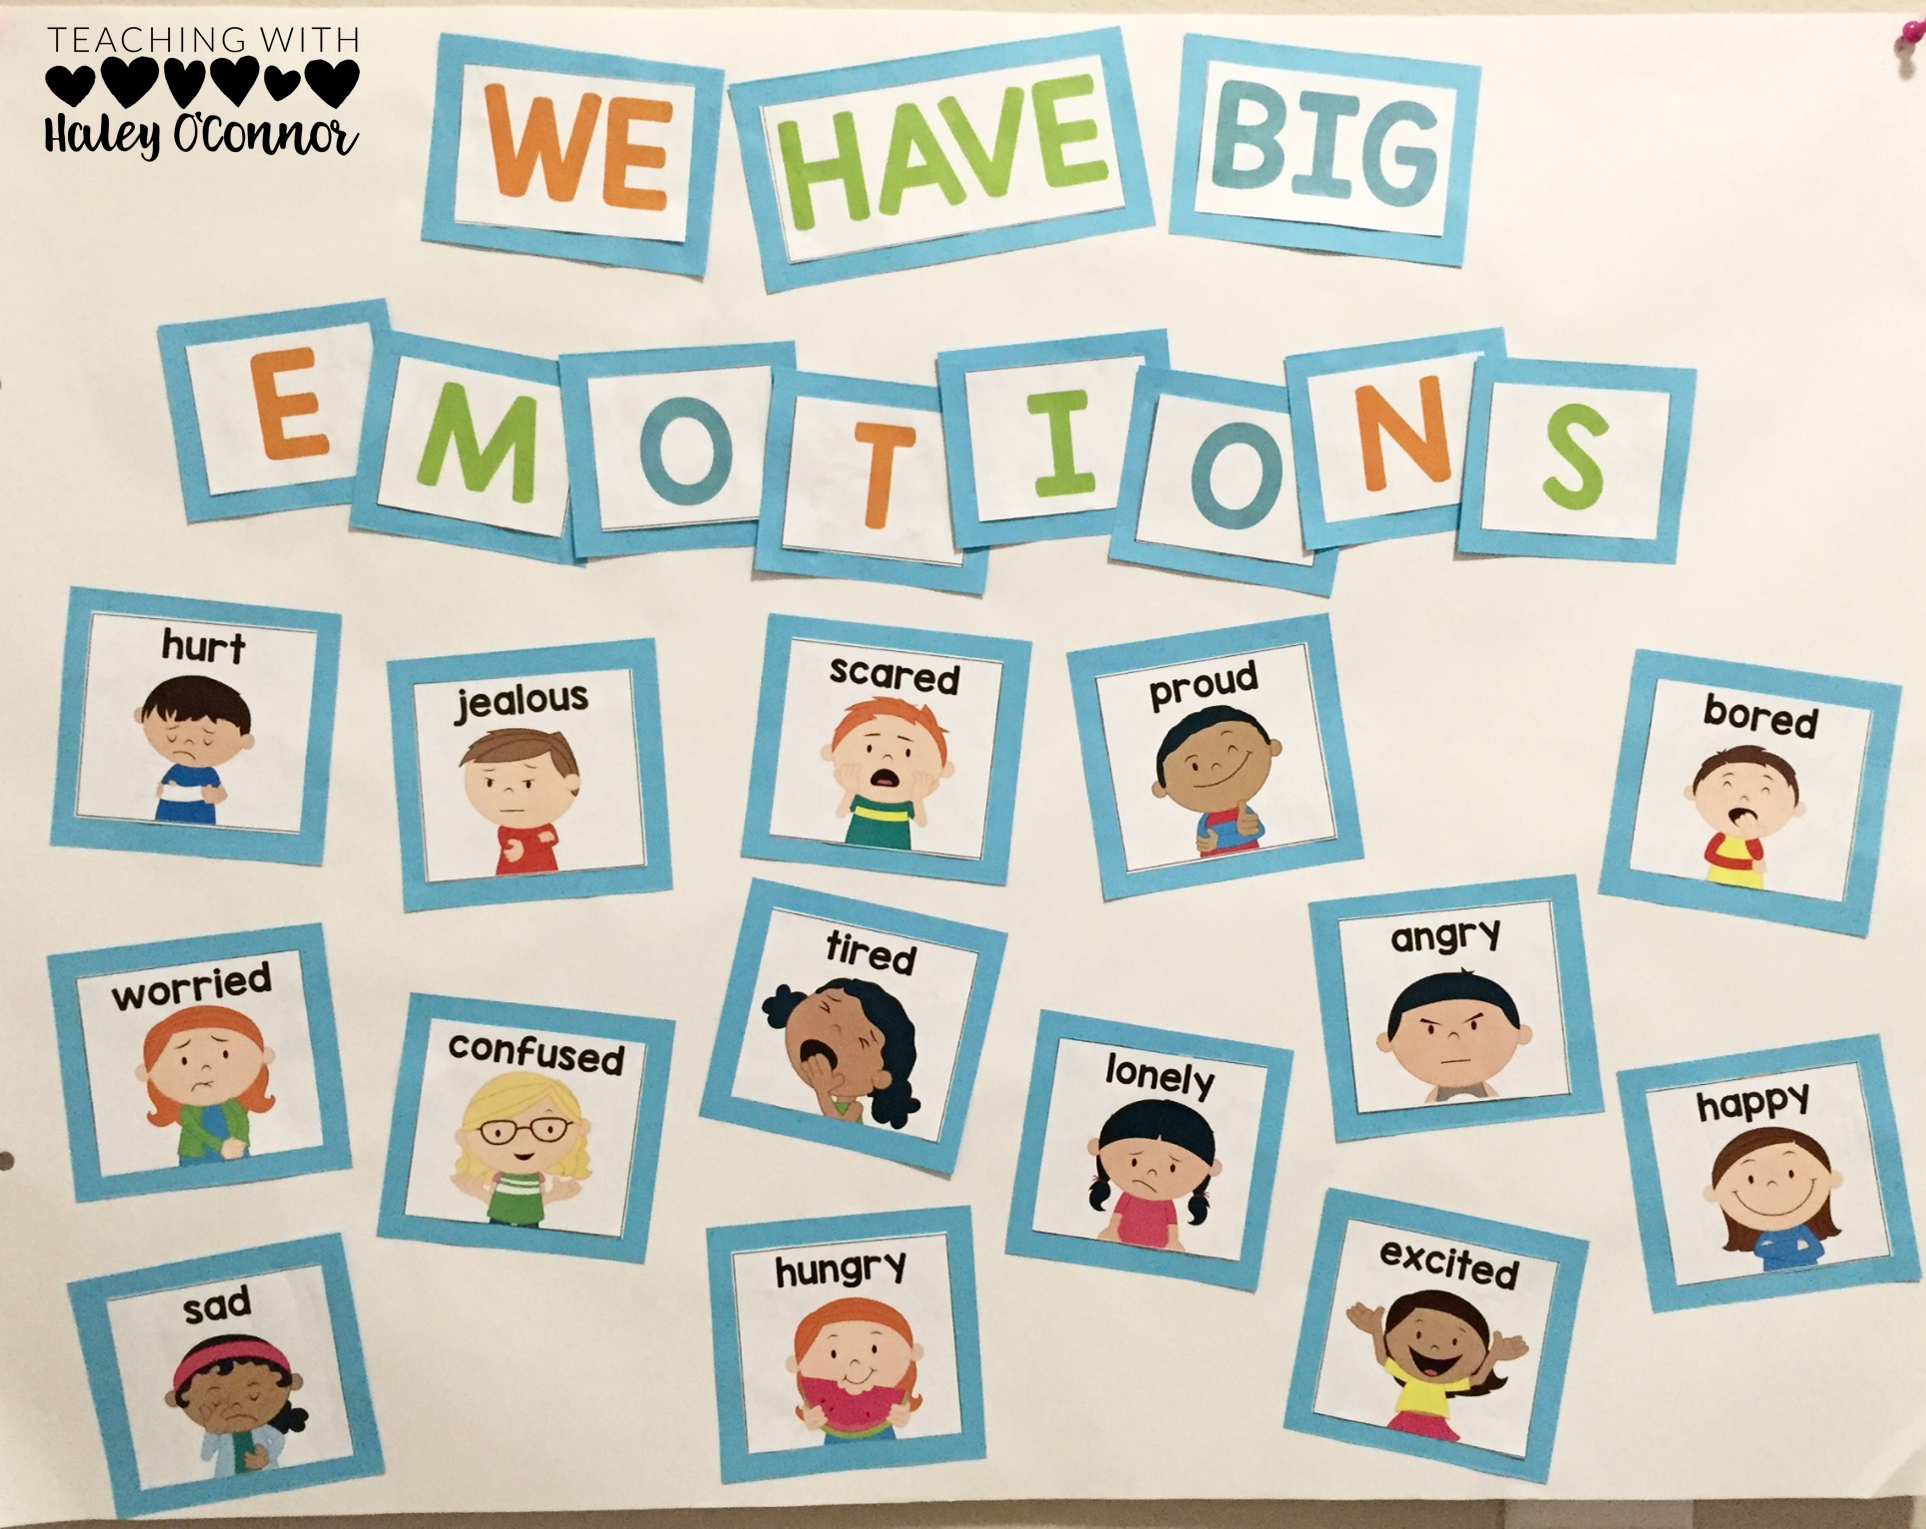 Big Emotions Anchor Chart to teach about self-control